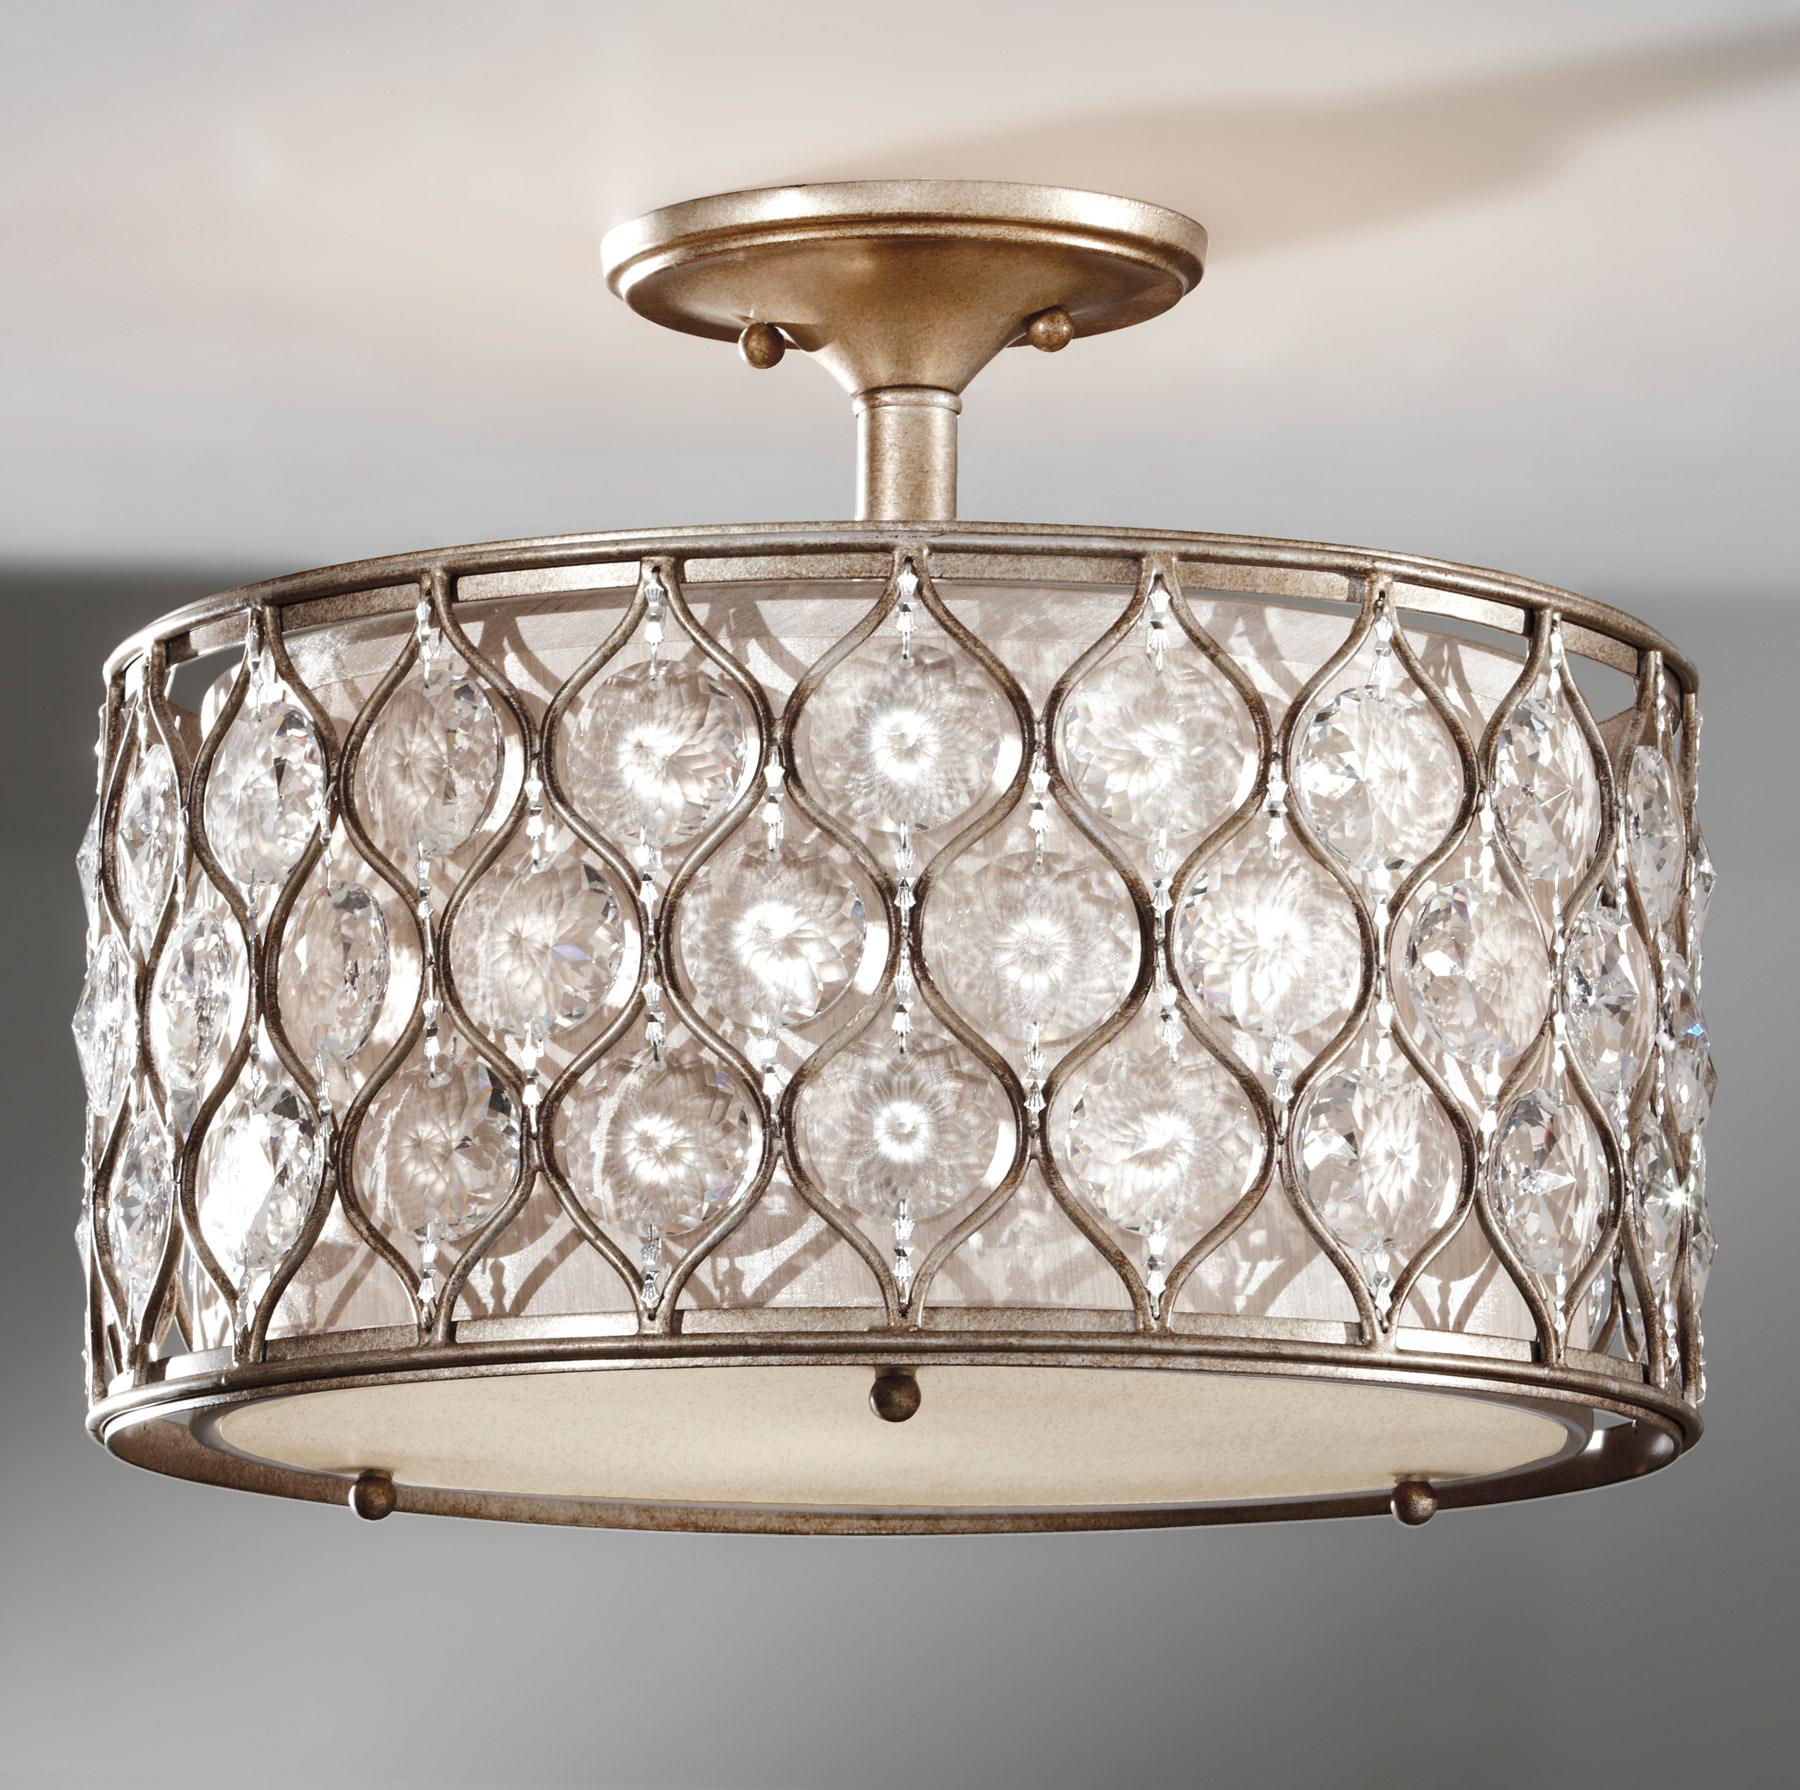 Feiss SF289BUS Crystal Lucia Semi Flush Ceiling Fixture